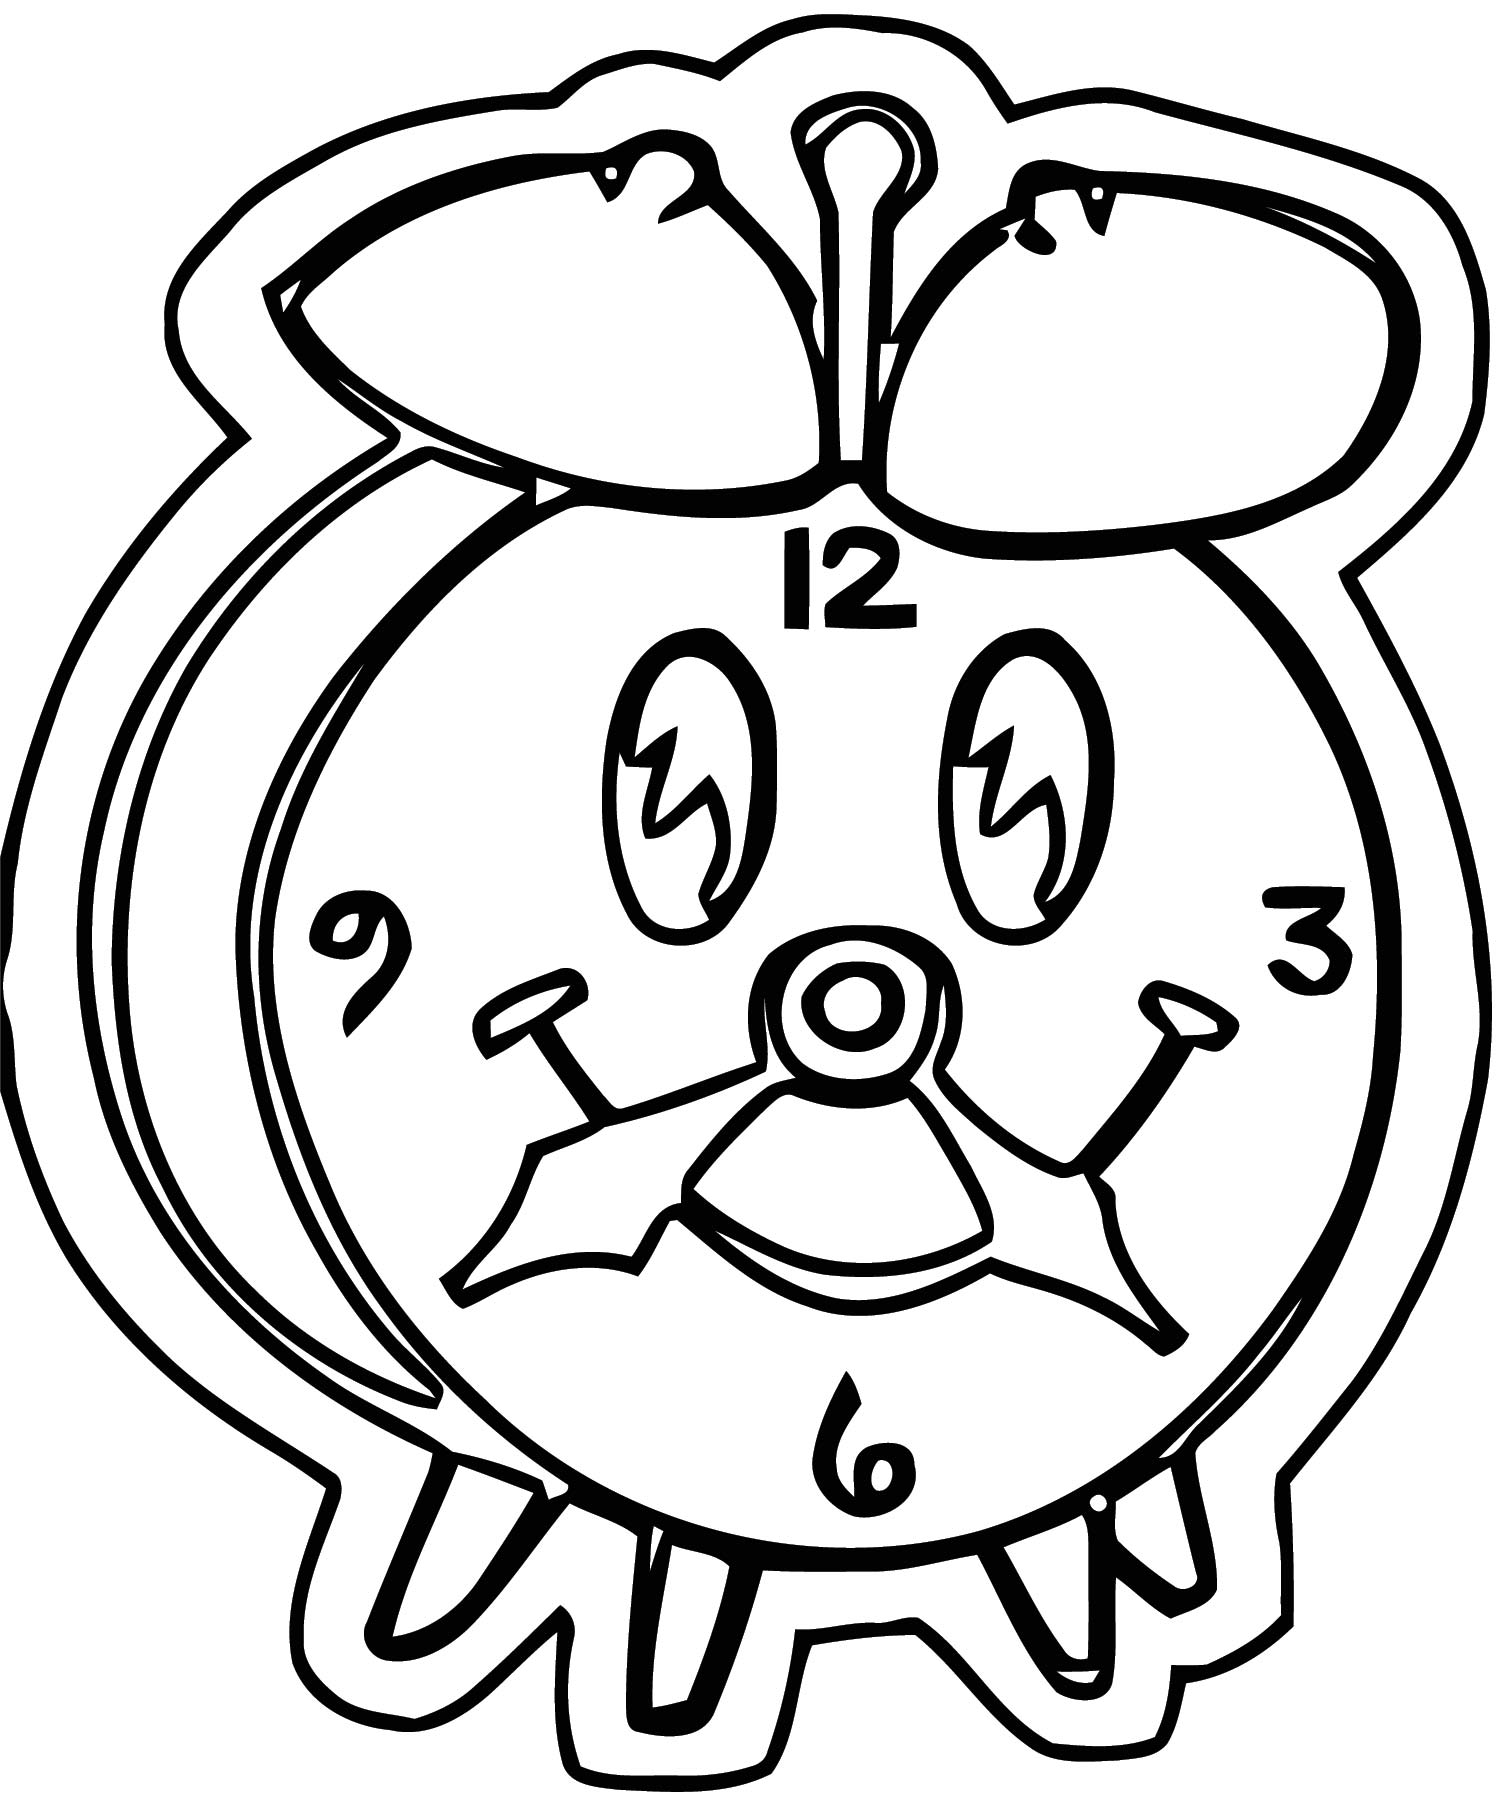 Clock Clip Art Abcyjxz Free Printable Tl Cartoonized Free Printable Coloring Page